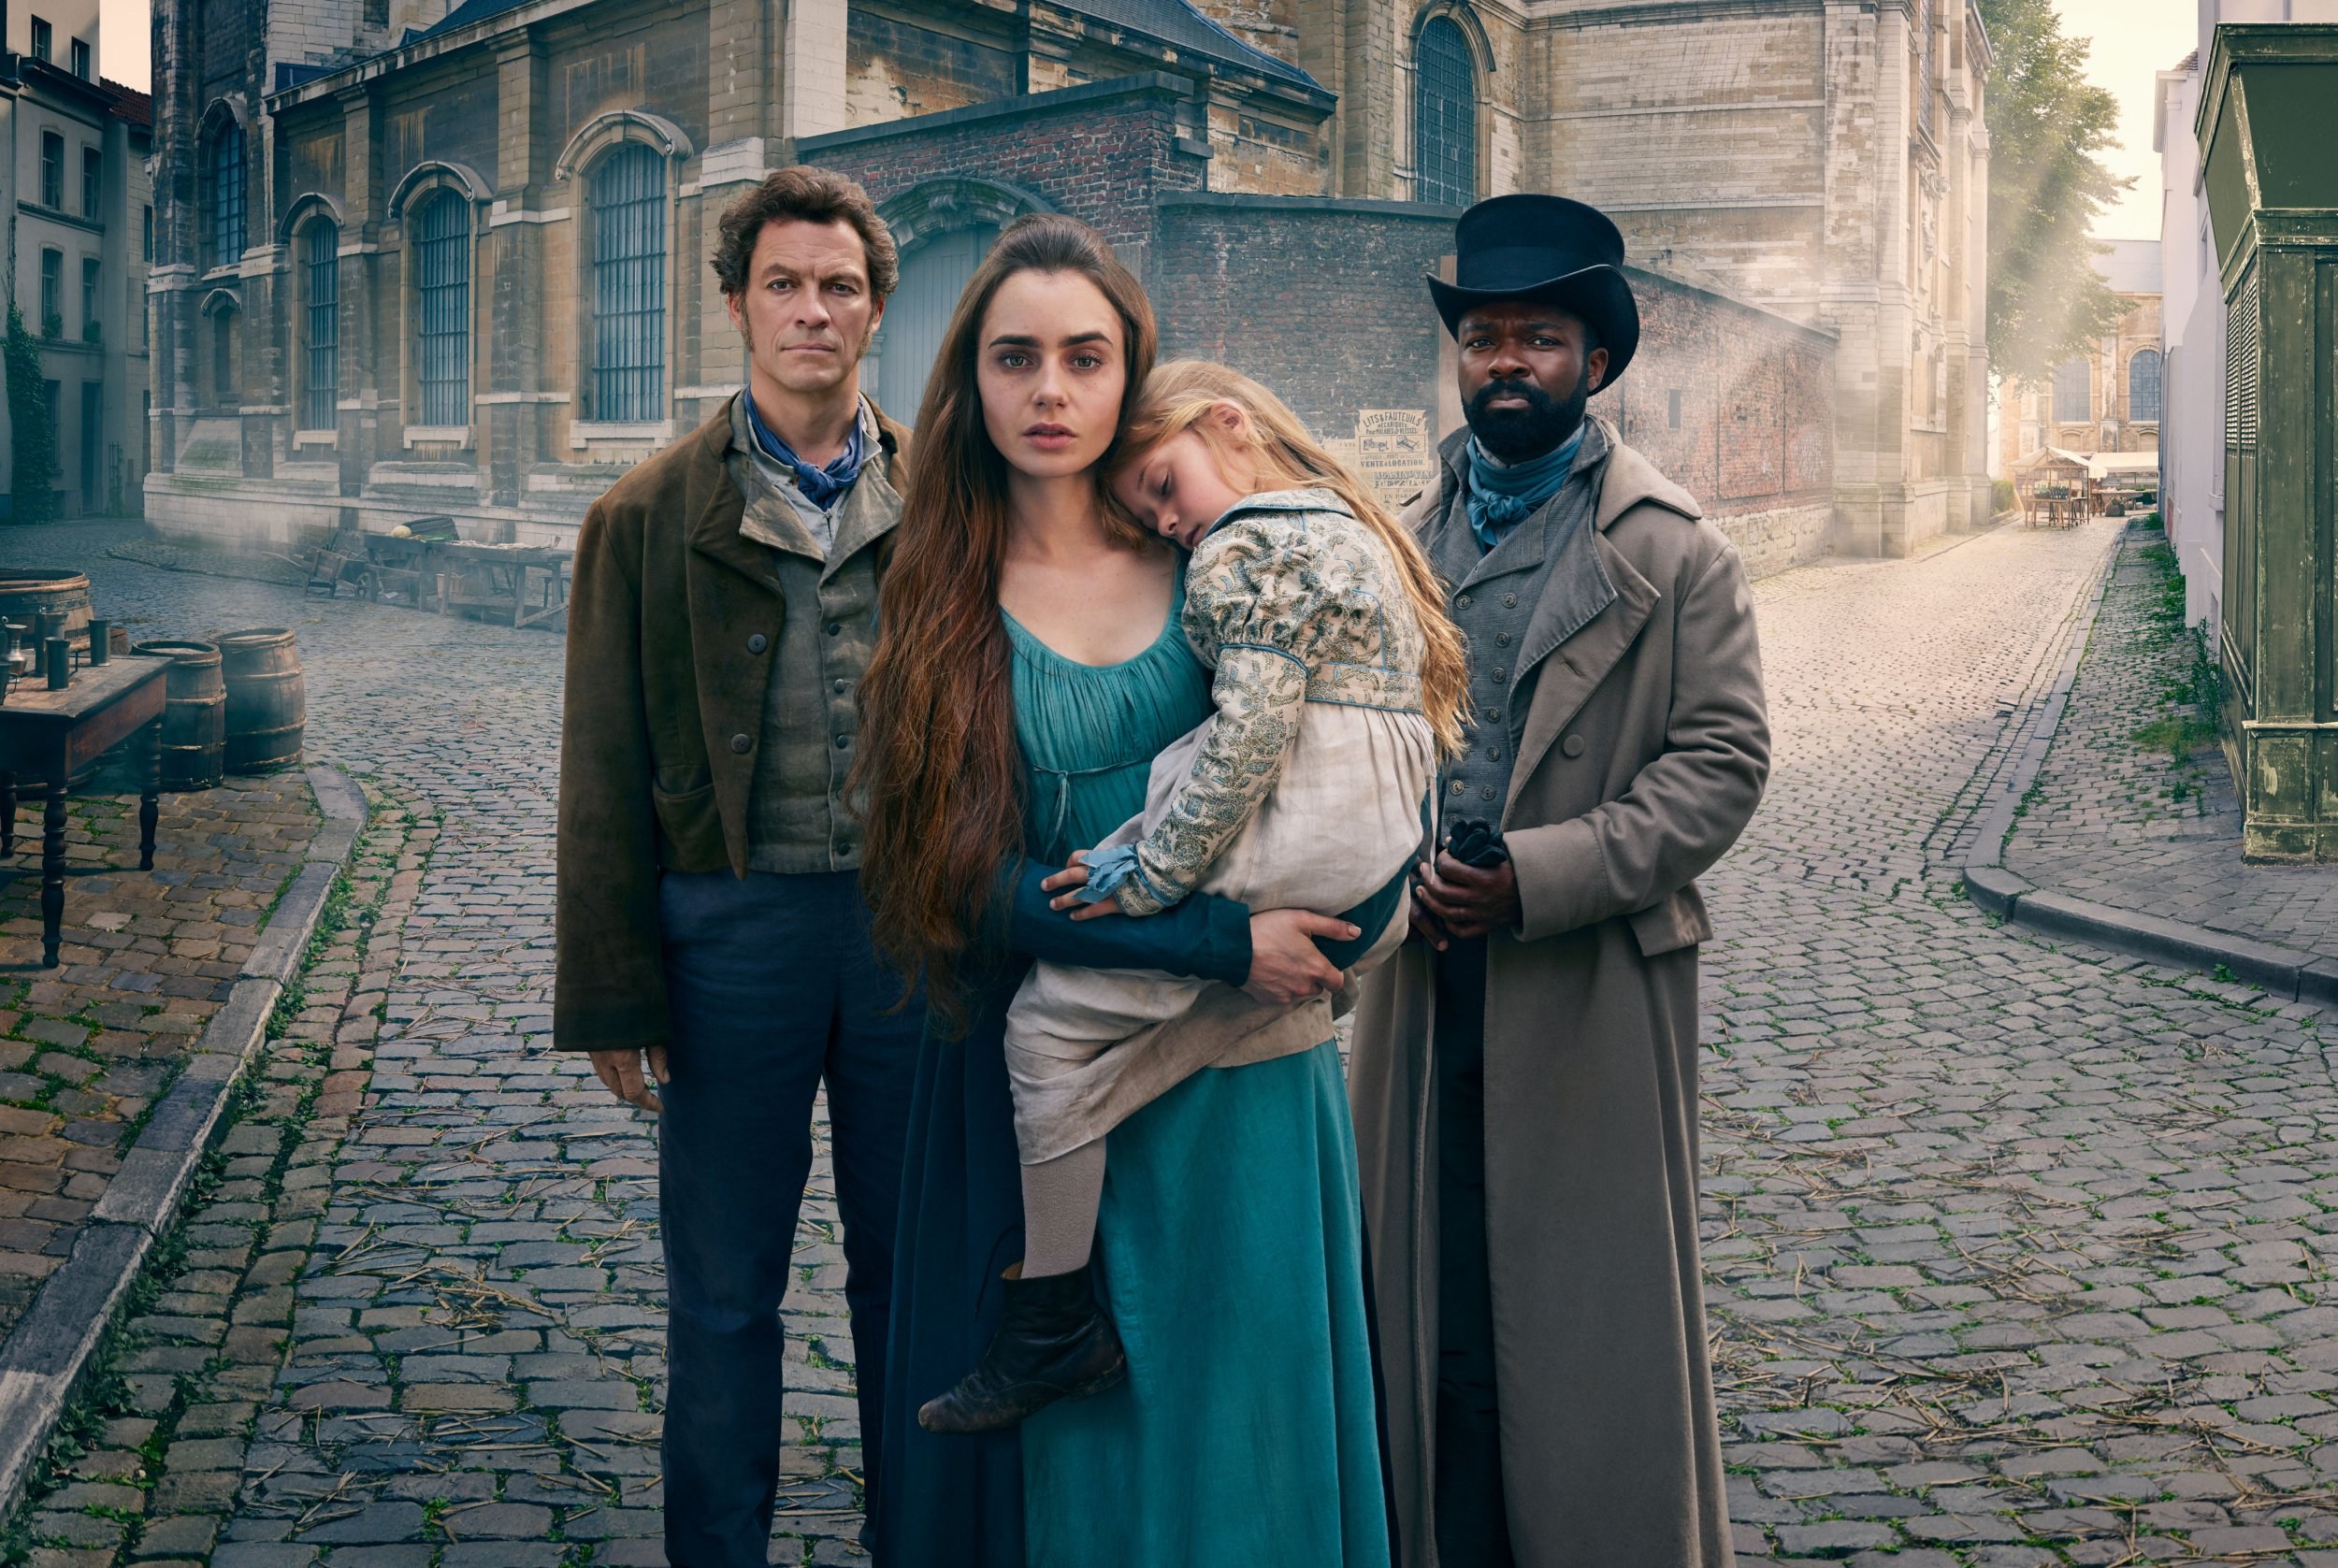 WARNING: Embargoed for publication until 00:00:01 on 11/12/2018 - Programme Name: Les Miserables - TX: n/a - Episode: Les Miserables - Generic Portraits (No. 1) - Picture Shows: **EMBARGOED FOR PUBLICATION UNTIL 00:01 HRS ON TUESDAY 11TH DECEMBER 2018** Jean Valjean (DOMINIC WEST), Fantine (LILY COLLINS), Javert (DAVID OYELOWO) - (C) BBC/Lookout Point - Photographer: Mitch Jenkins